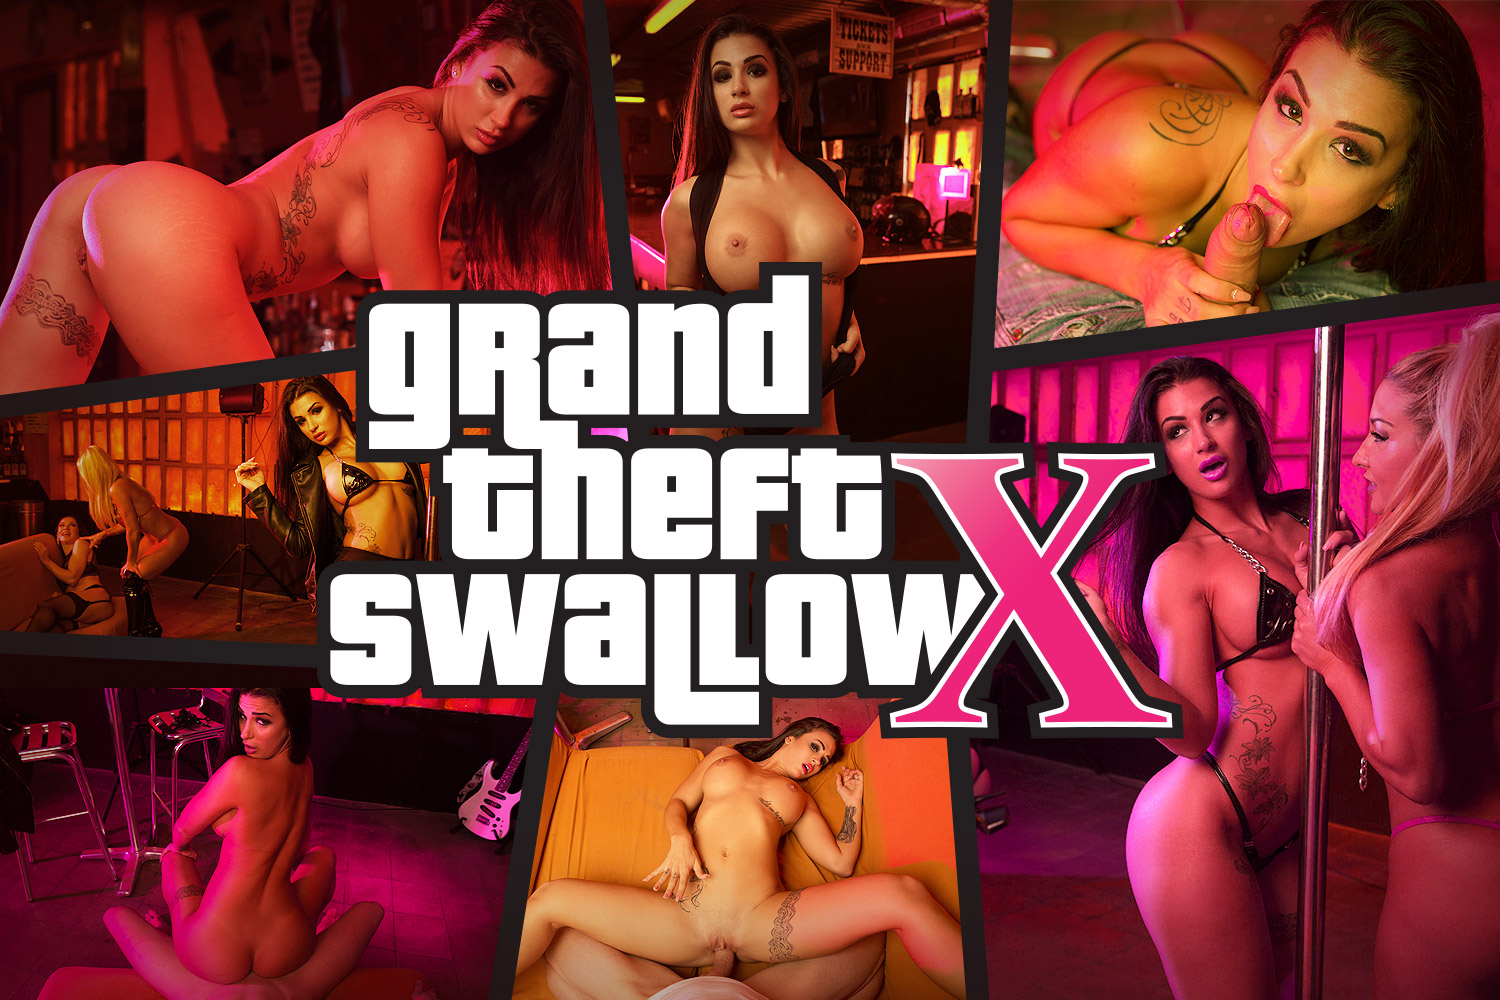 GTA VR Cosplay Porn Scene in the Strip Club | MobileVRxxx